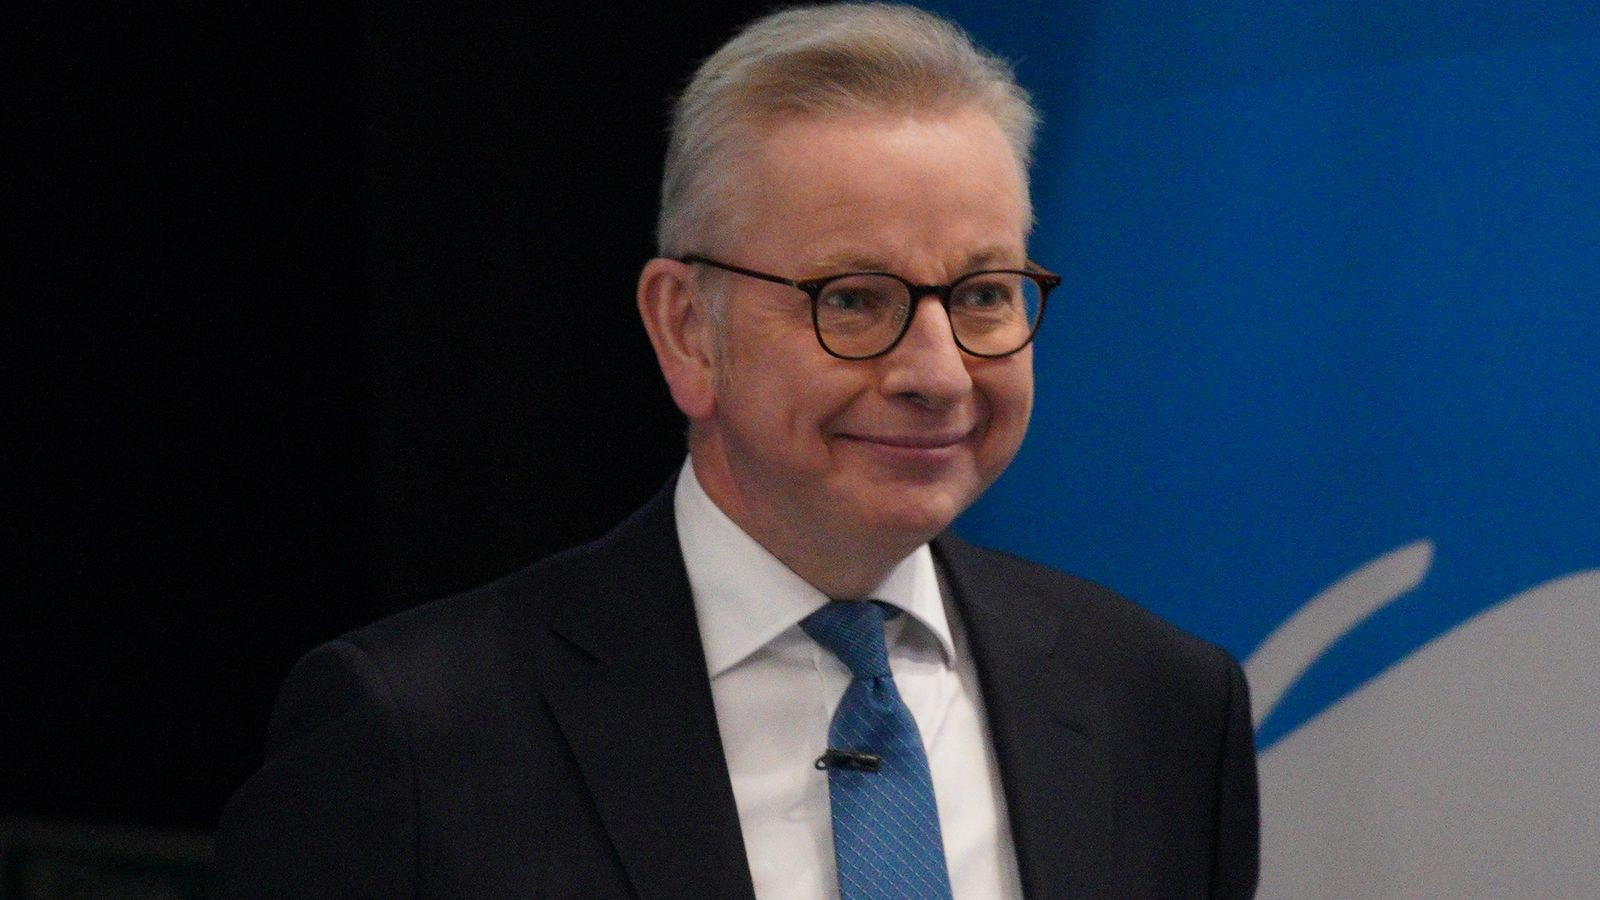 Conservative Party bosses embroiled in row over claims Michael Gove dinner offered to property developers for £4k